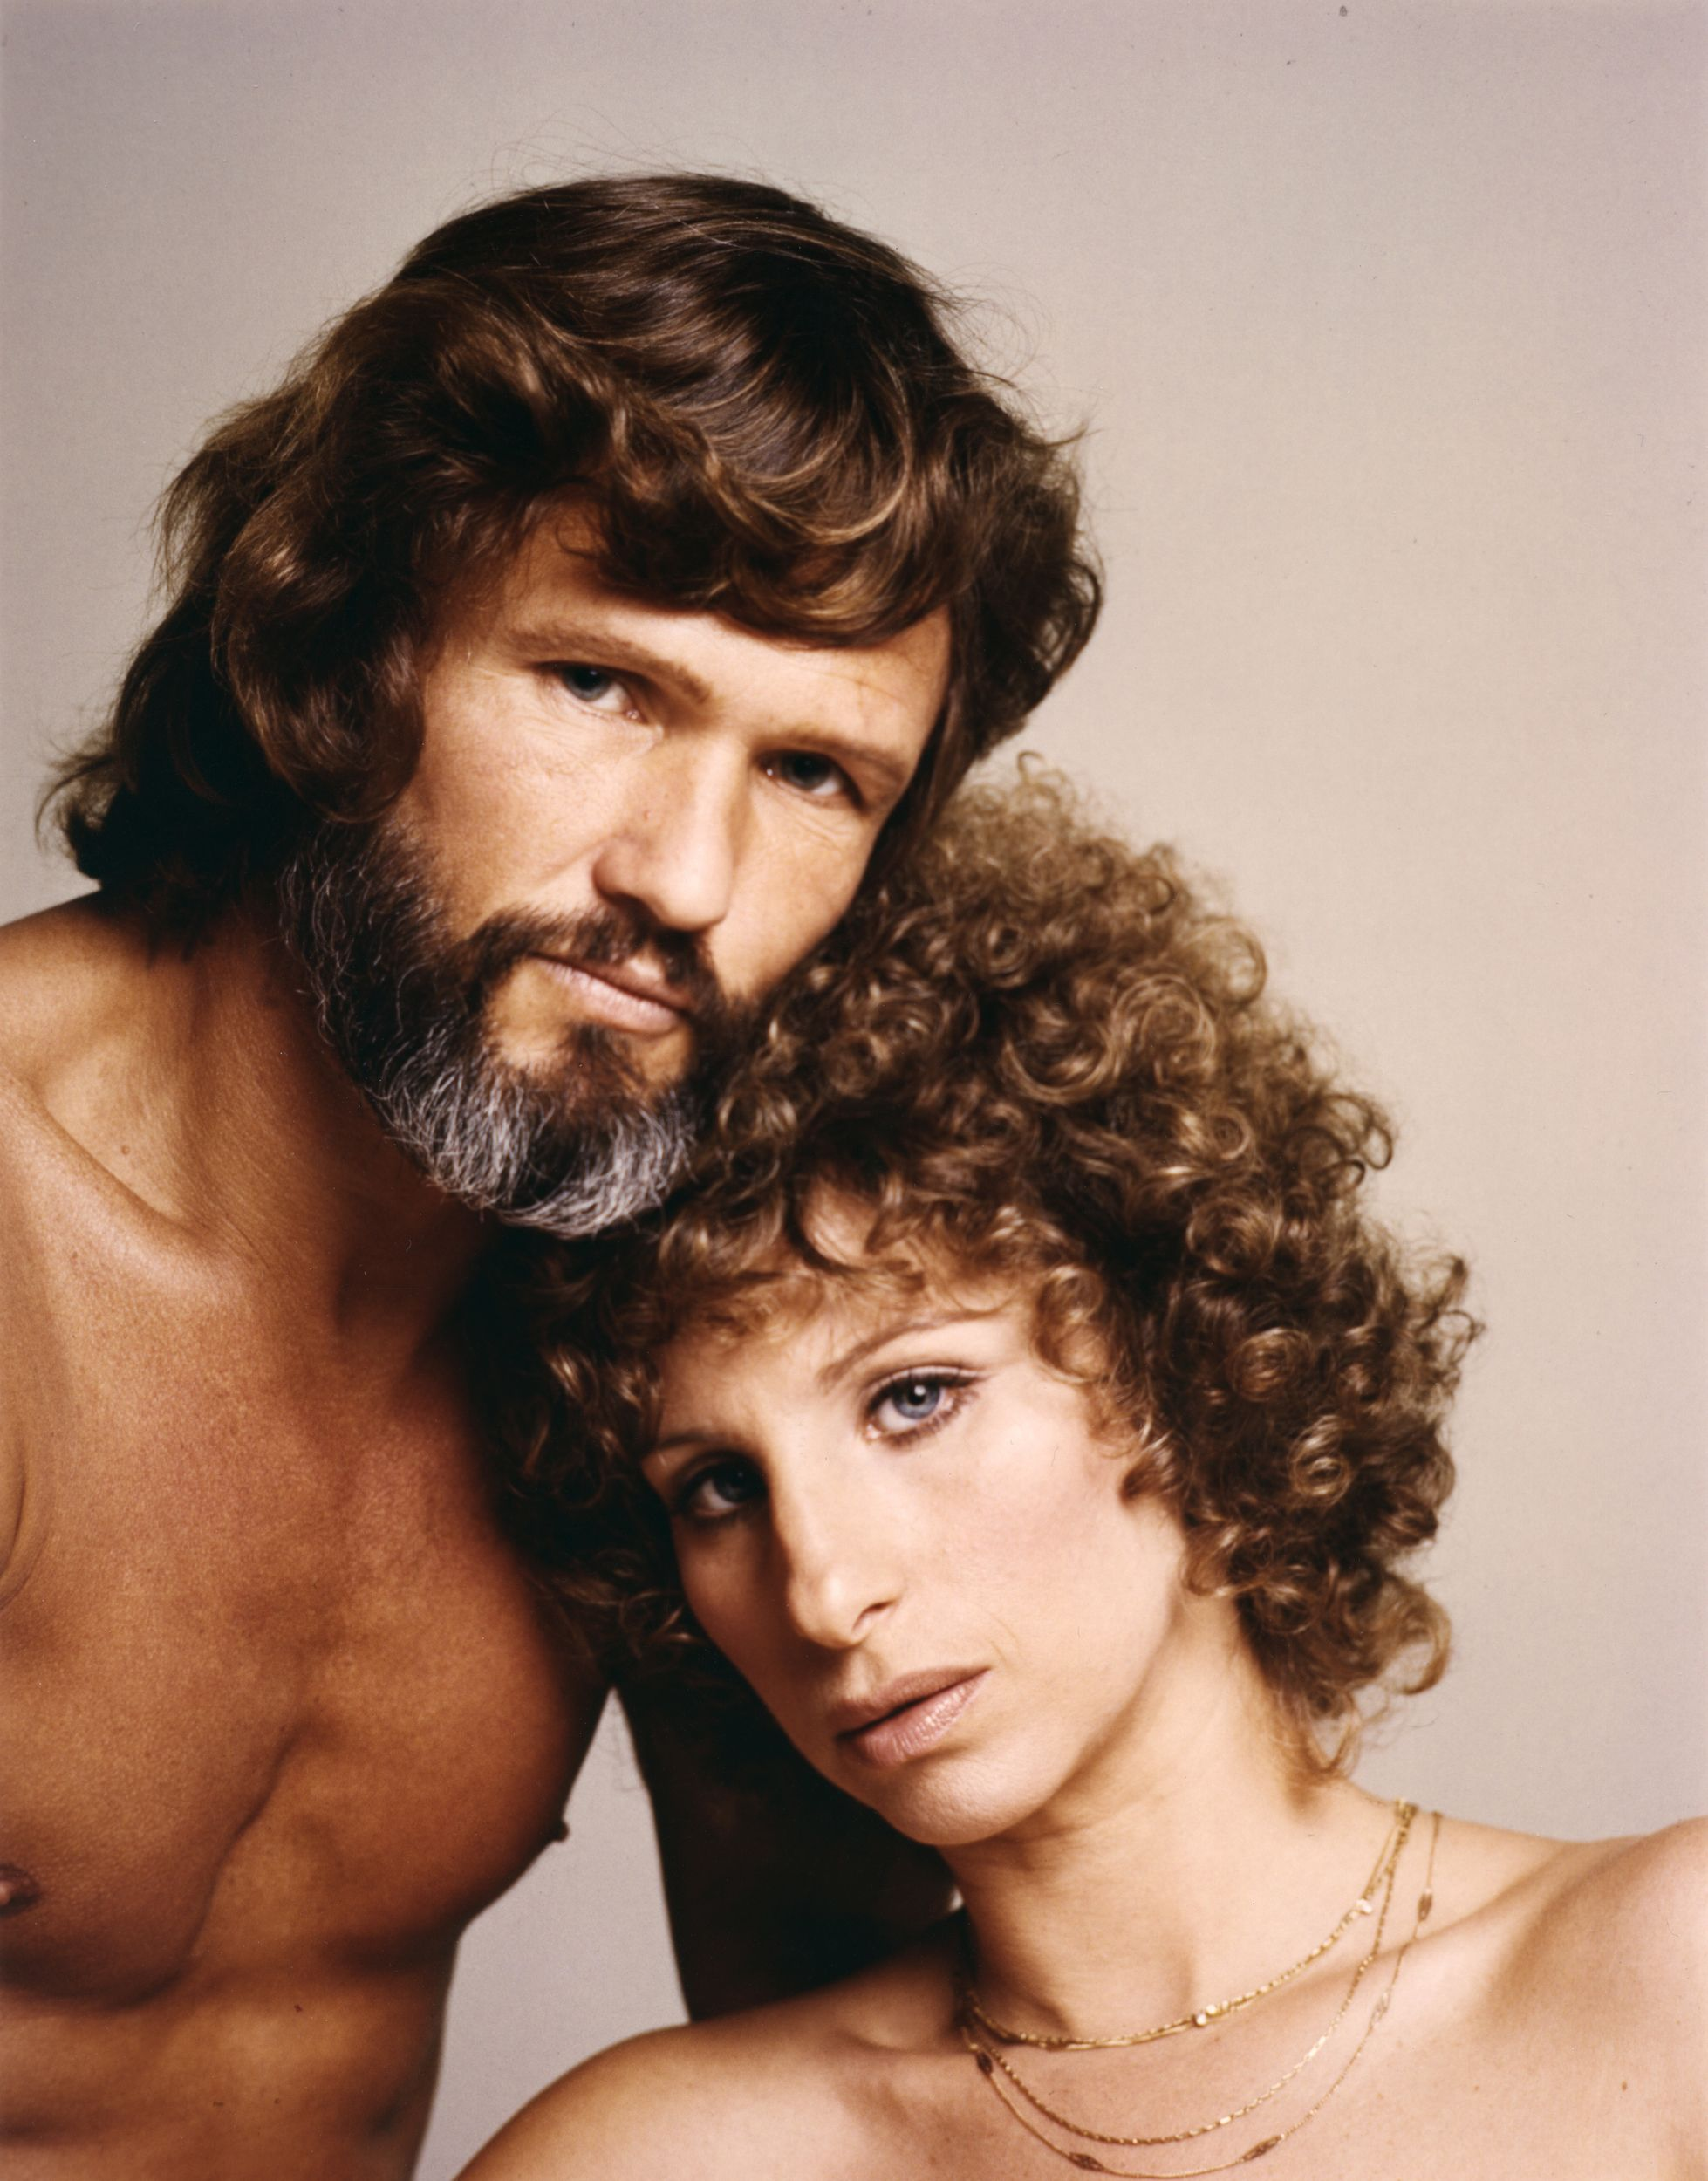 A Look Back At Barbra Streisand And Kris Kristofferson In A Star Is Born Barbra Streisand A Star Is Born Barbra